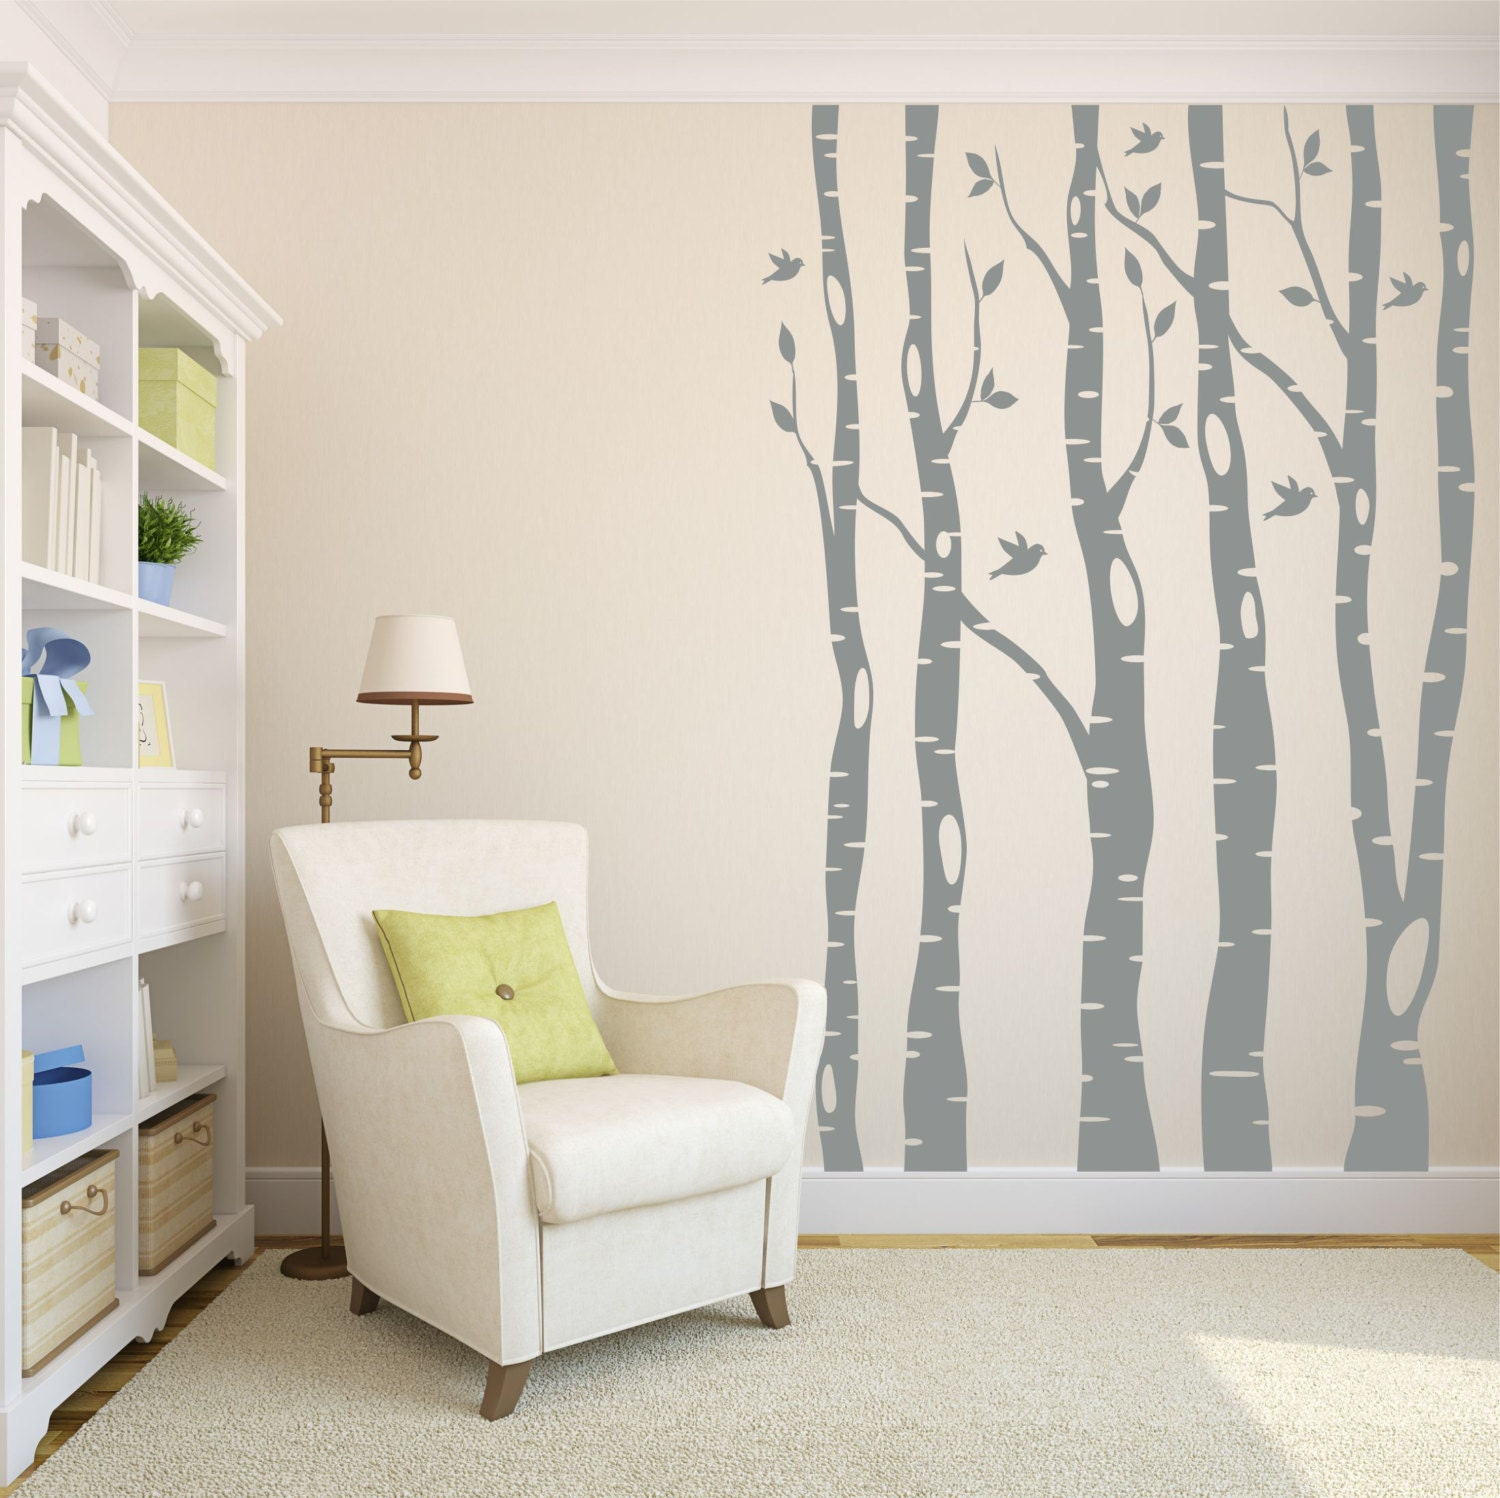 Park Lane Couture Winter Trese Fabric peel & stick wall mural decal  sticker at Sears.com